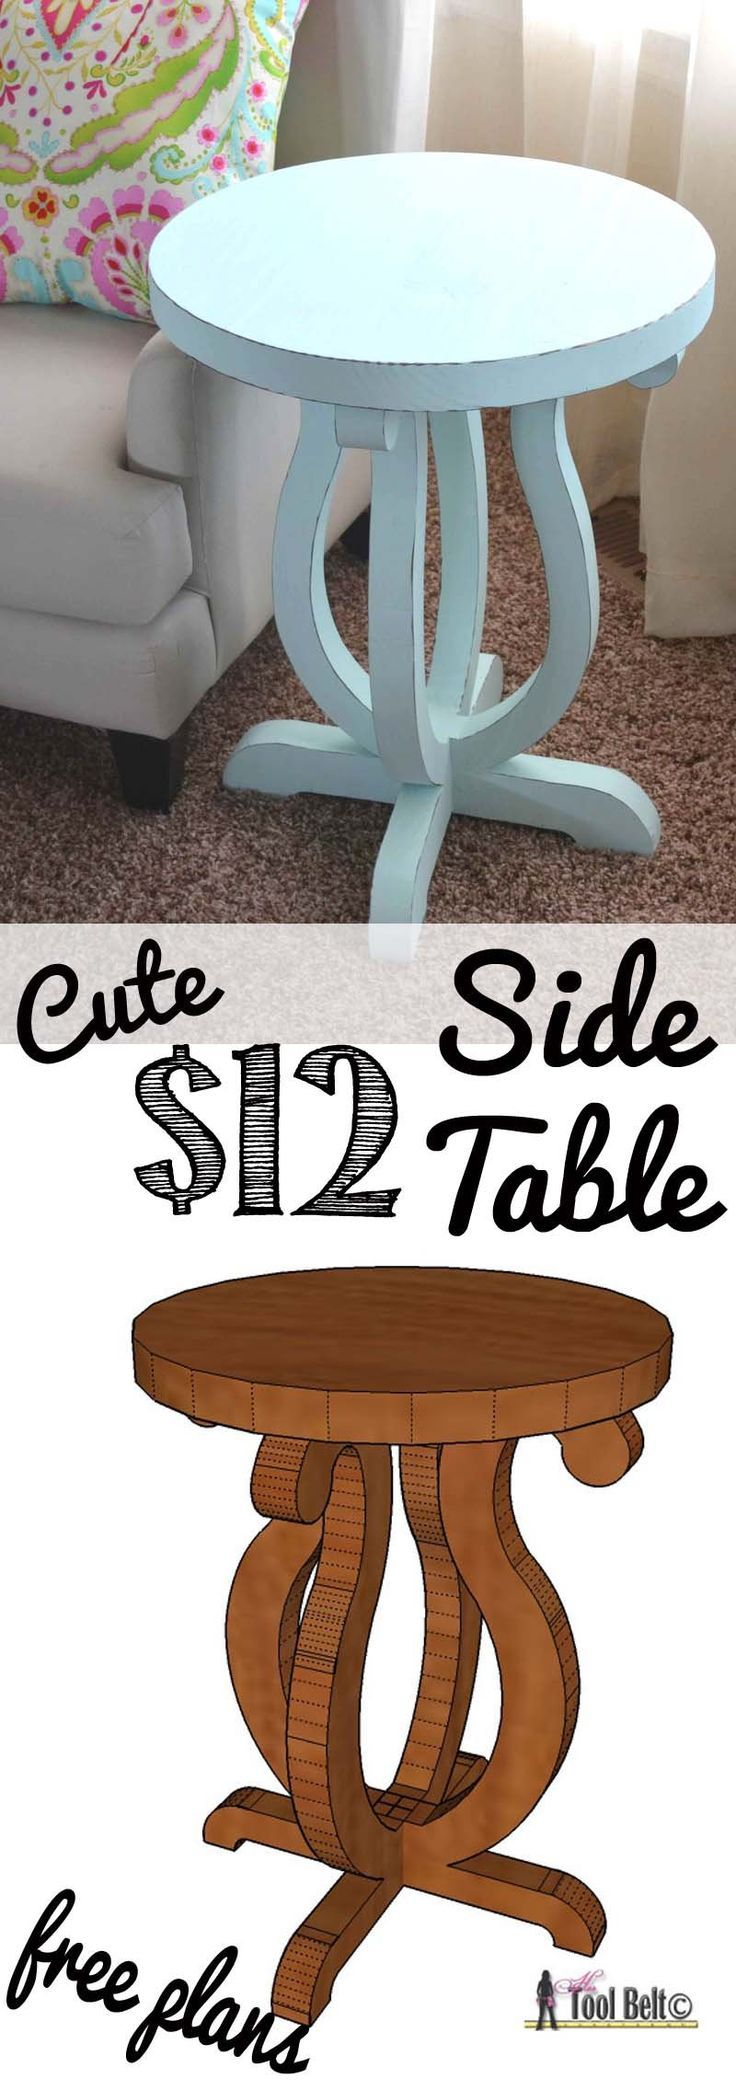 Design homemade dining table plans diy ideas 187 woodplans woodplans - Build A Cute Side Table From A Simple 2 X 10 Board Free Plans And